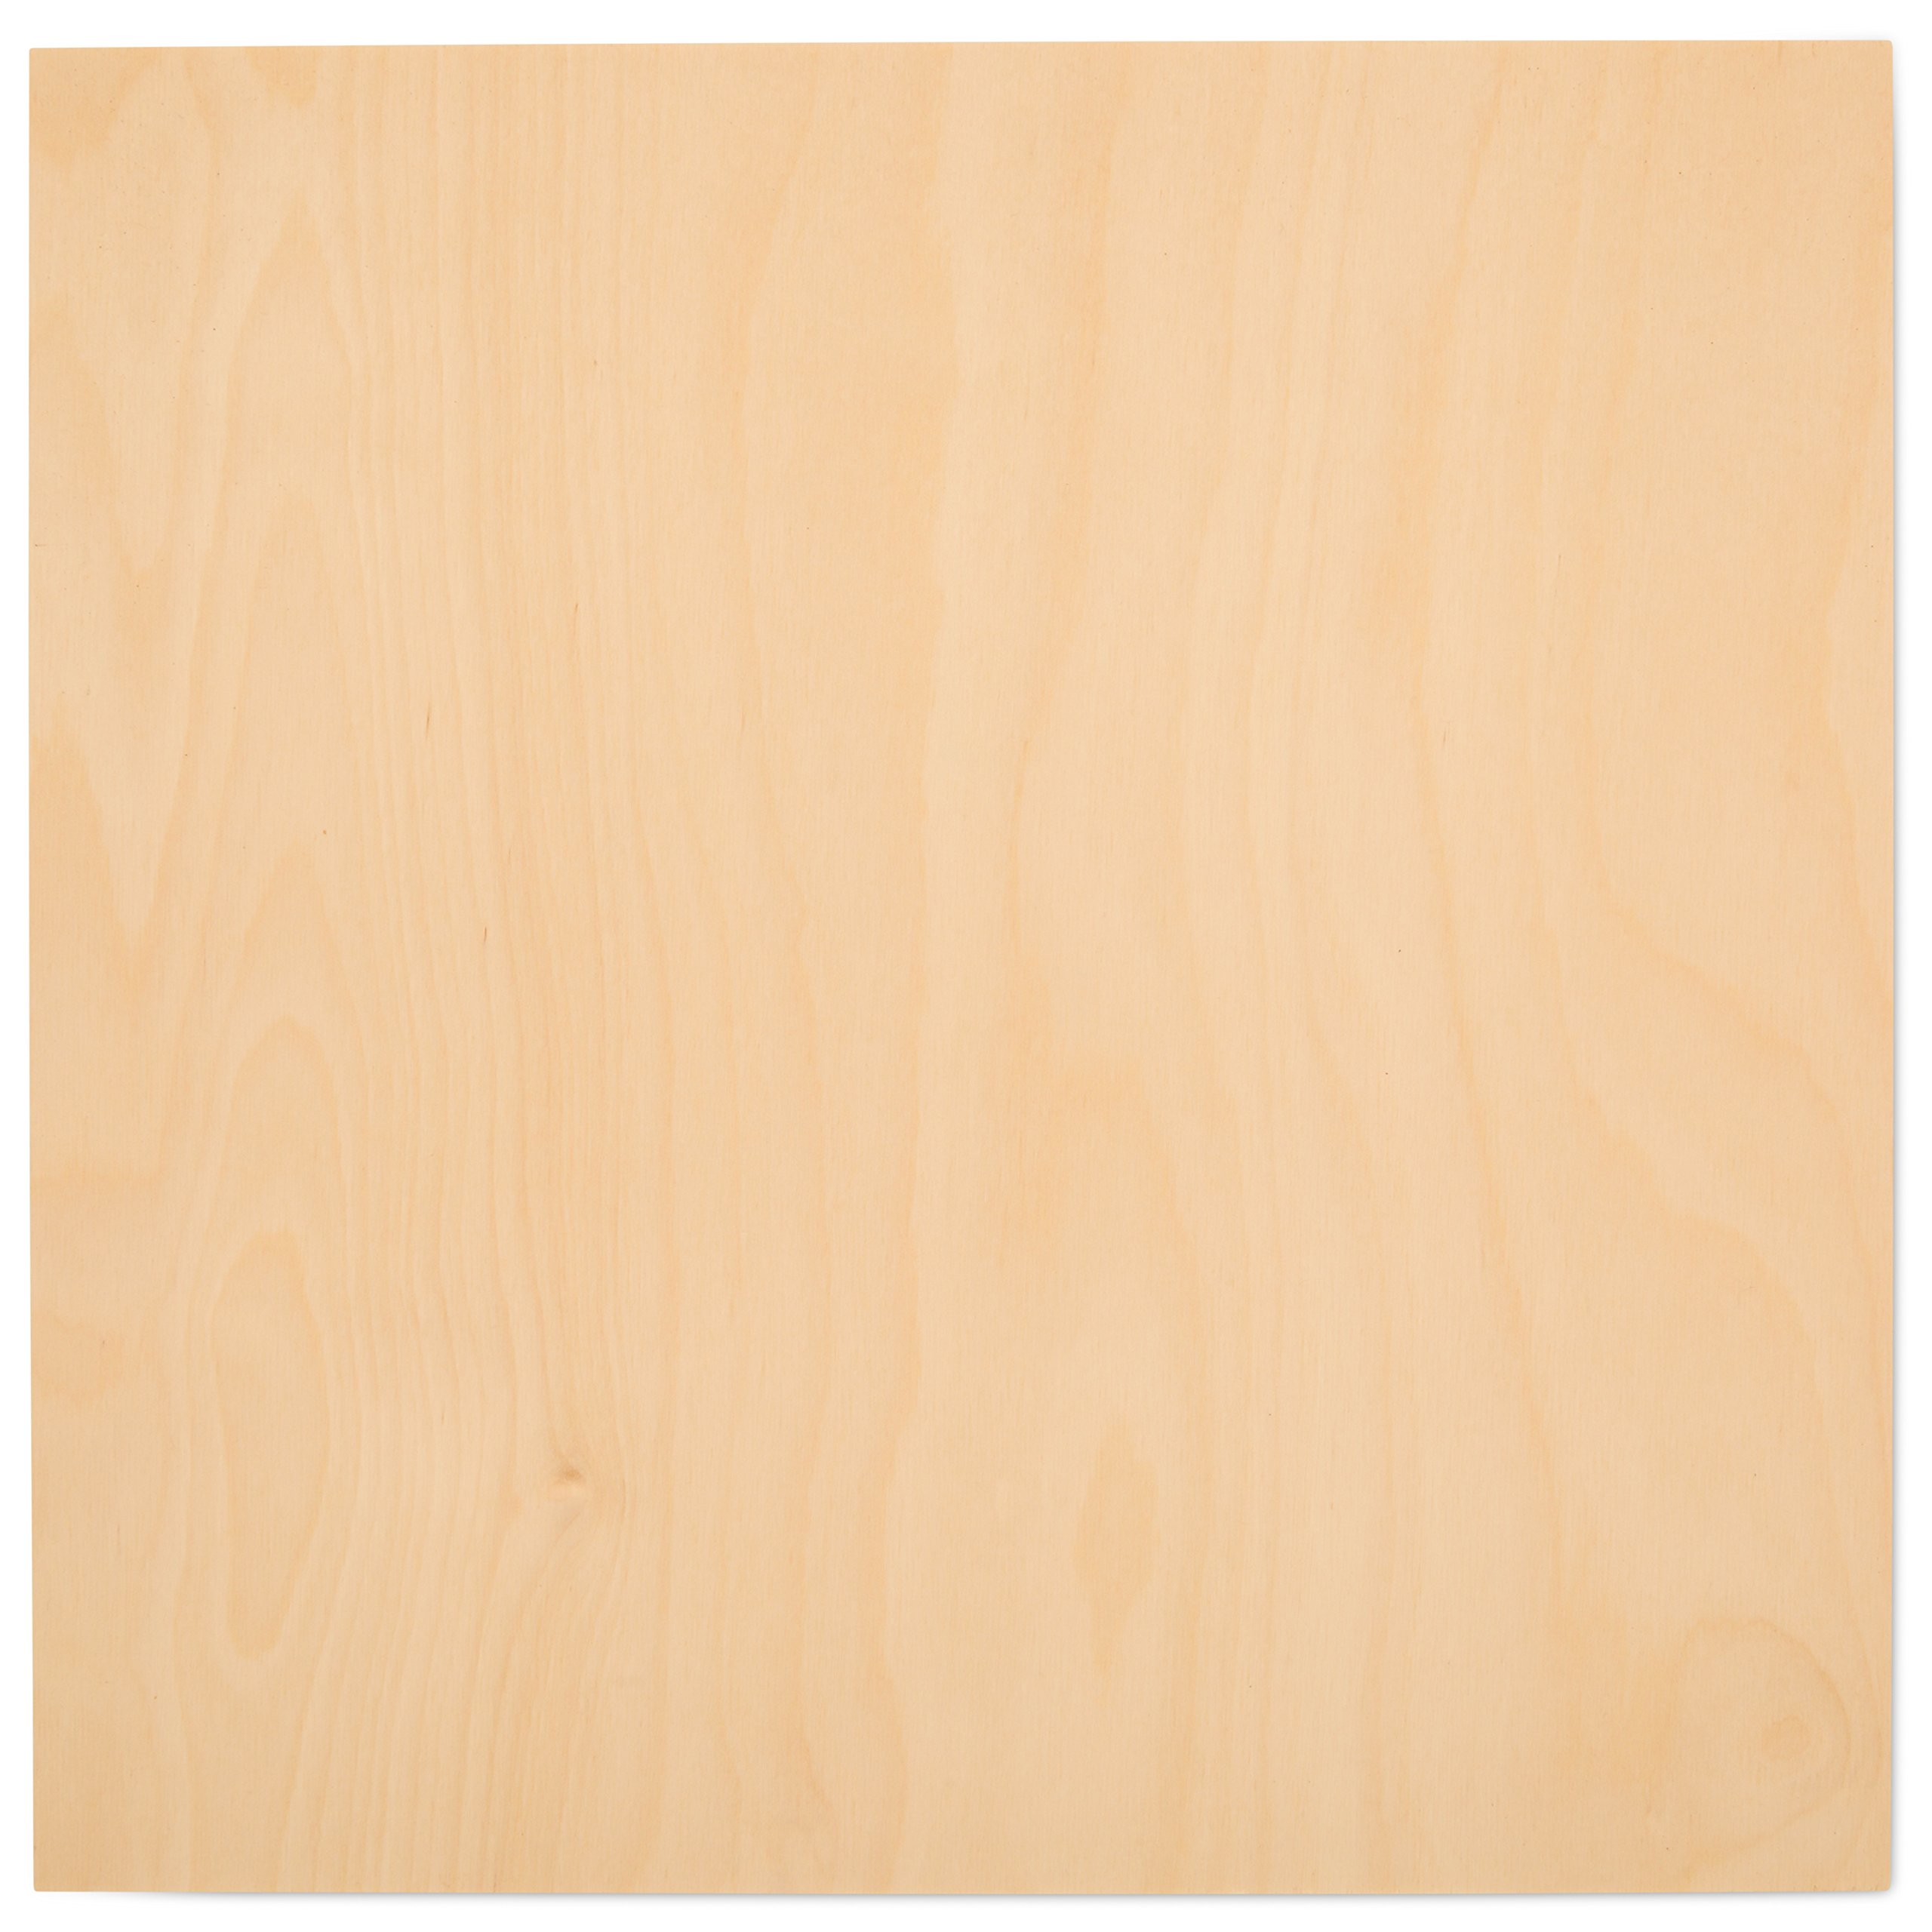 5 mm 1/4'' X 12'' X 12'' Premium Baltic Birch Plywood - B/BB Grade - 8 Flat Sheets by Woodpeckers by Woodpeckers